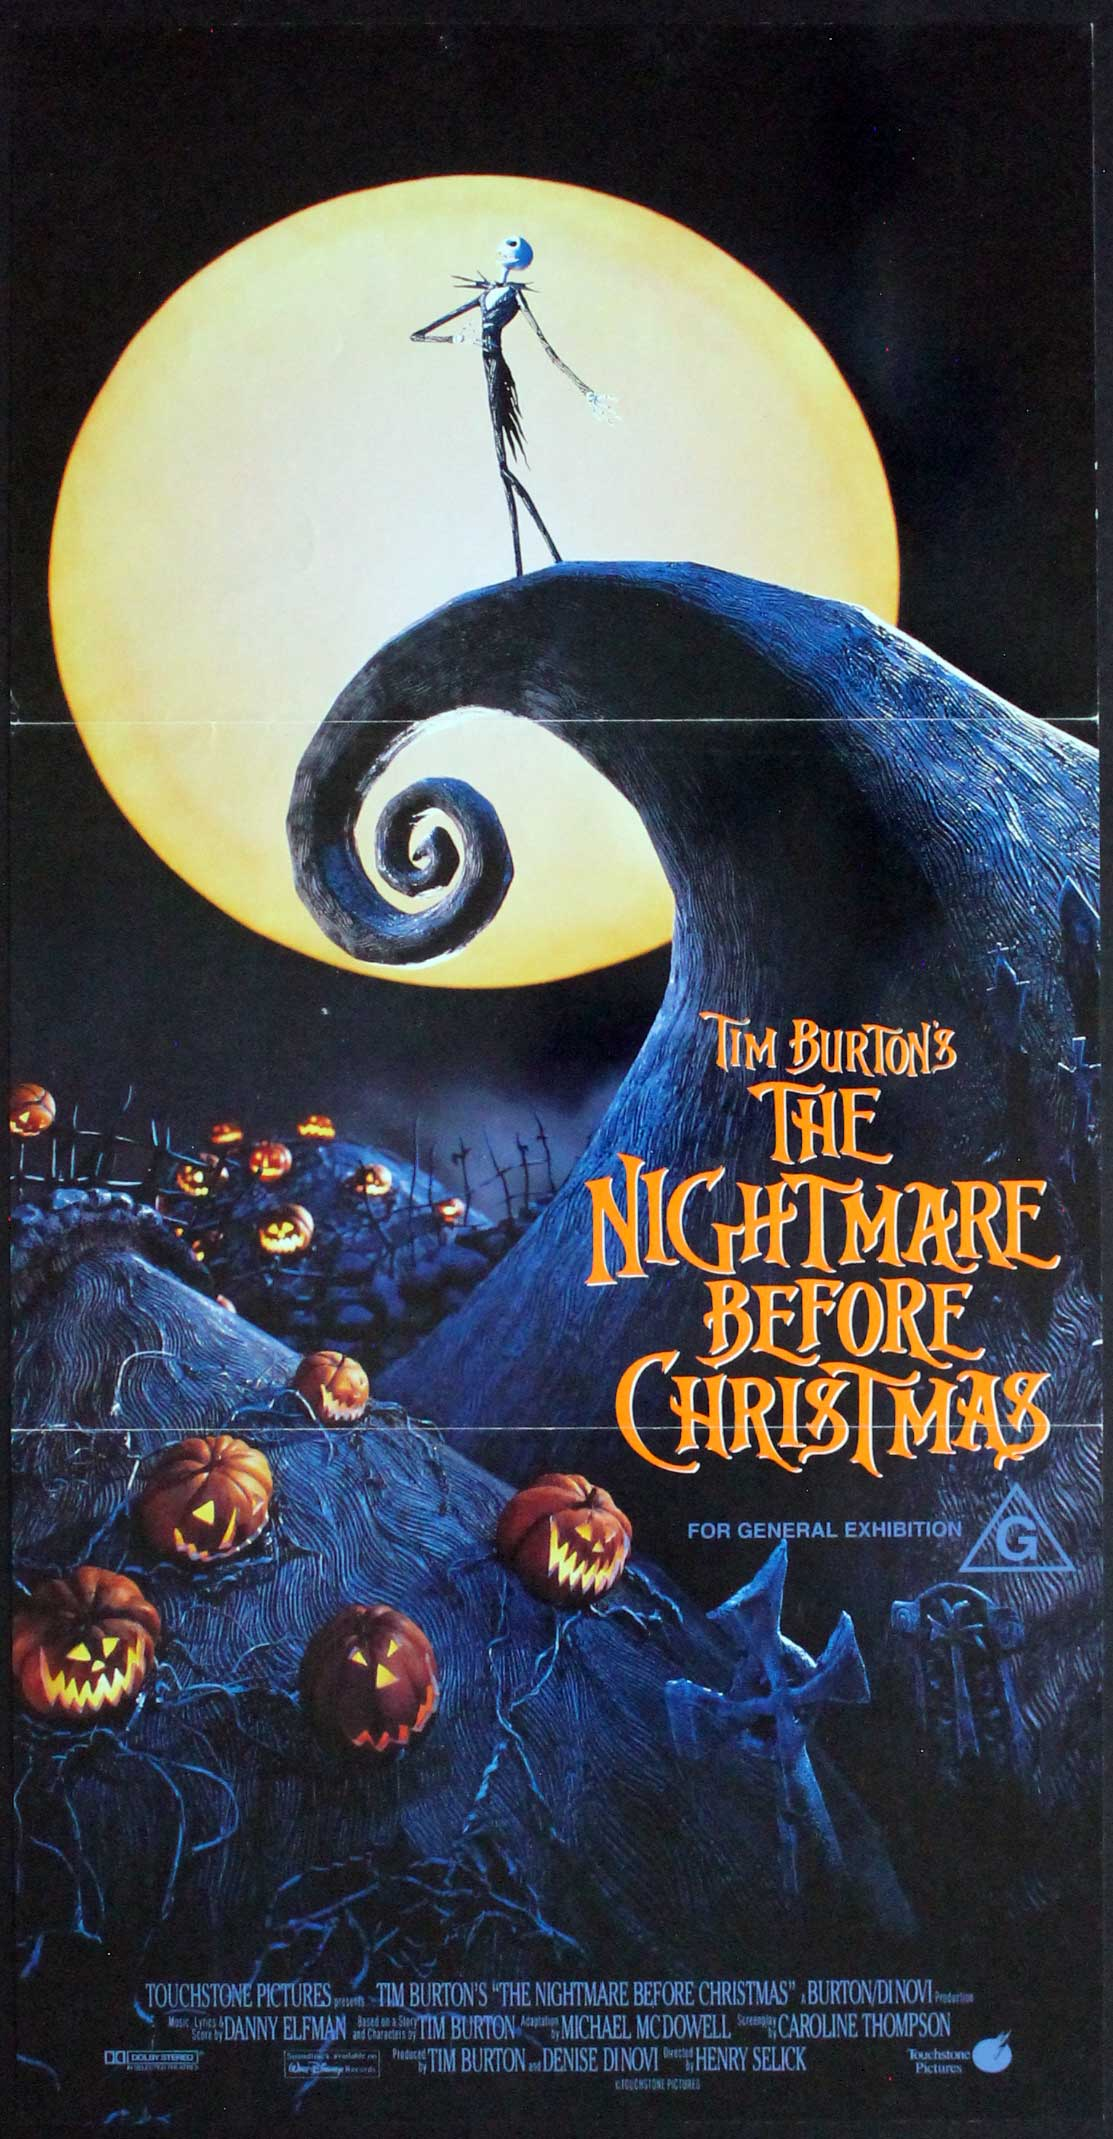 Nightmare before Christmas, 1993, Tim Burton, Original Australian Daybill (13x25.5)